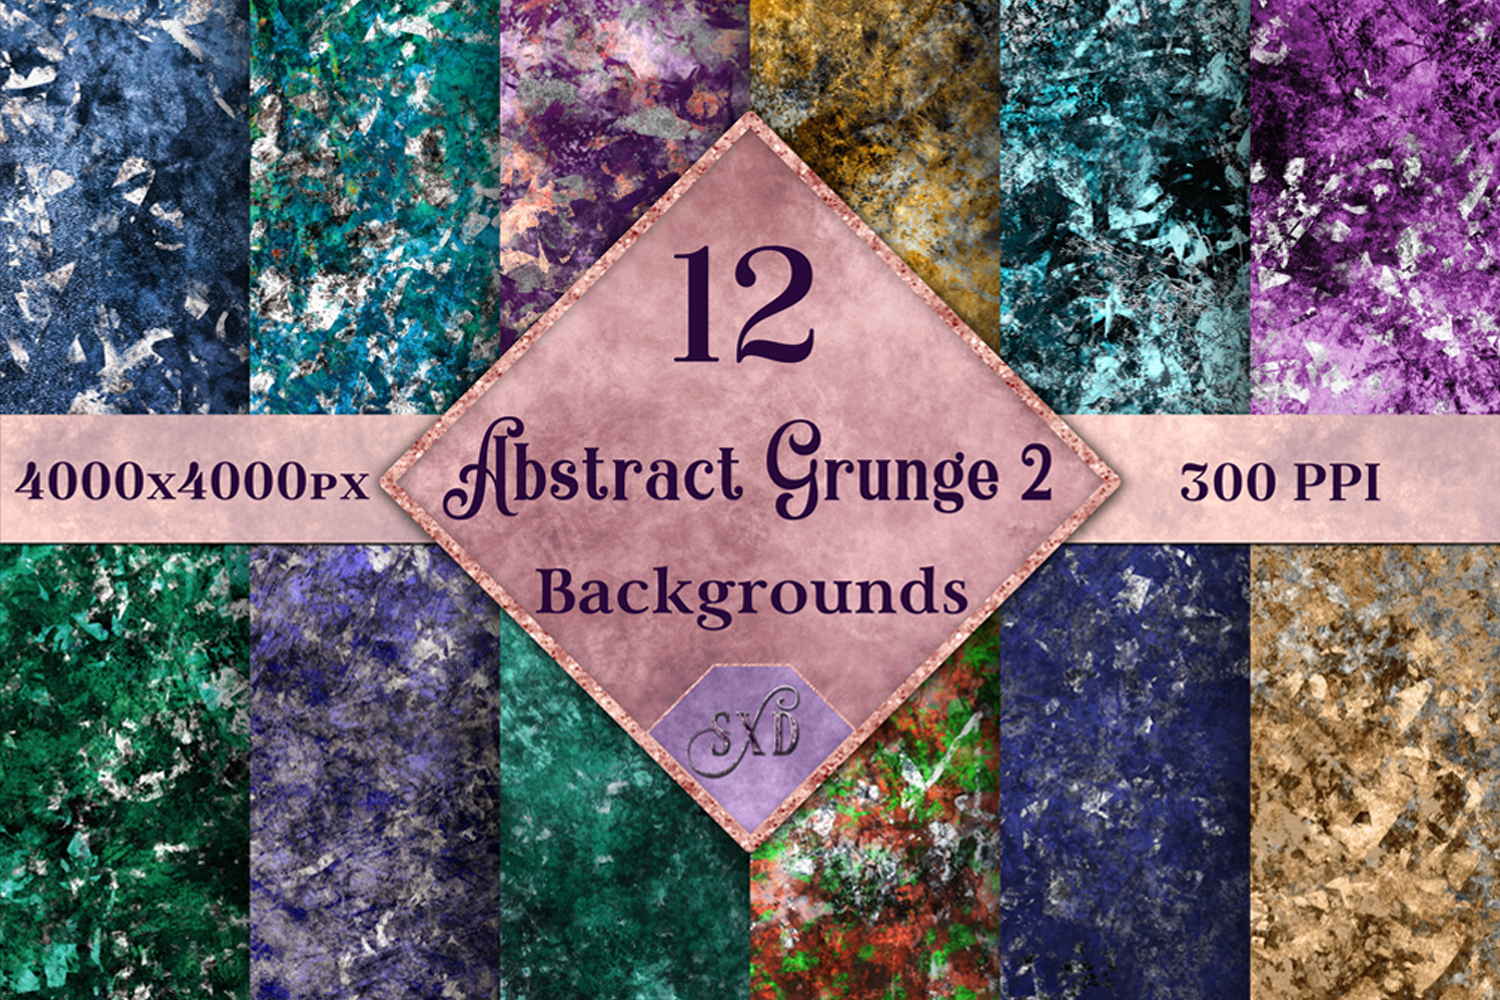 Abstract Grunge 2 Backgrounds - 12 Image Set example image 1